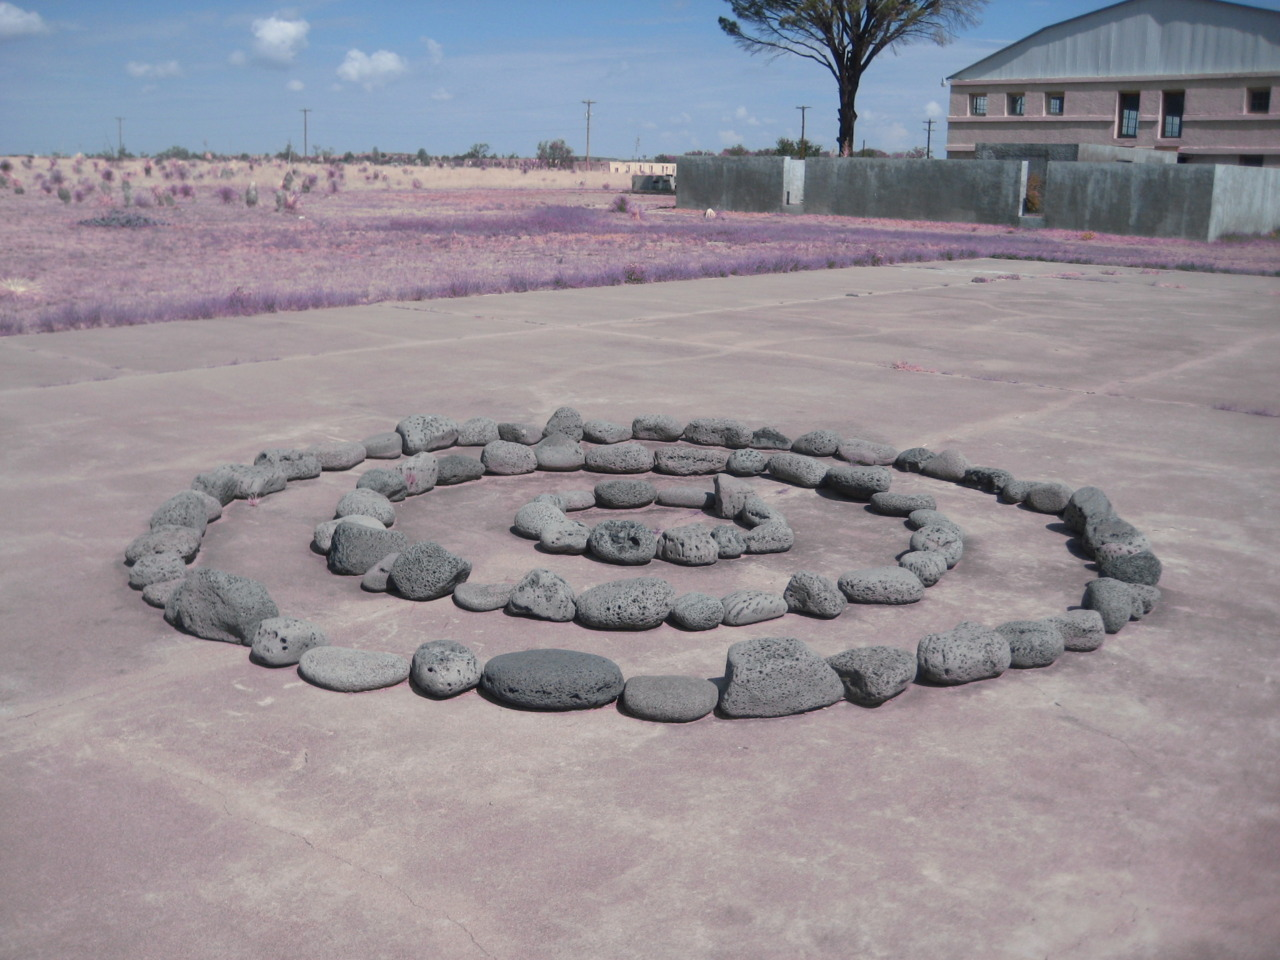 Richard Long , Sea Lava Circles. Judd saw this piece at an icelandic gallery, purchased it, and had it installed on a former tennis court at Chinati.